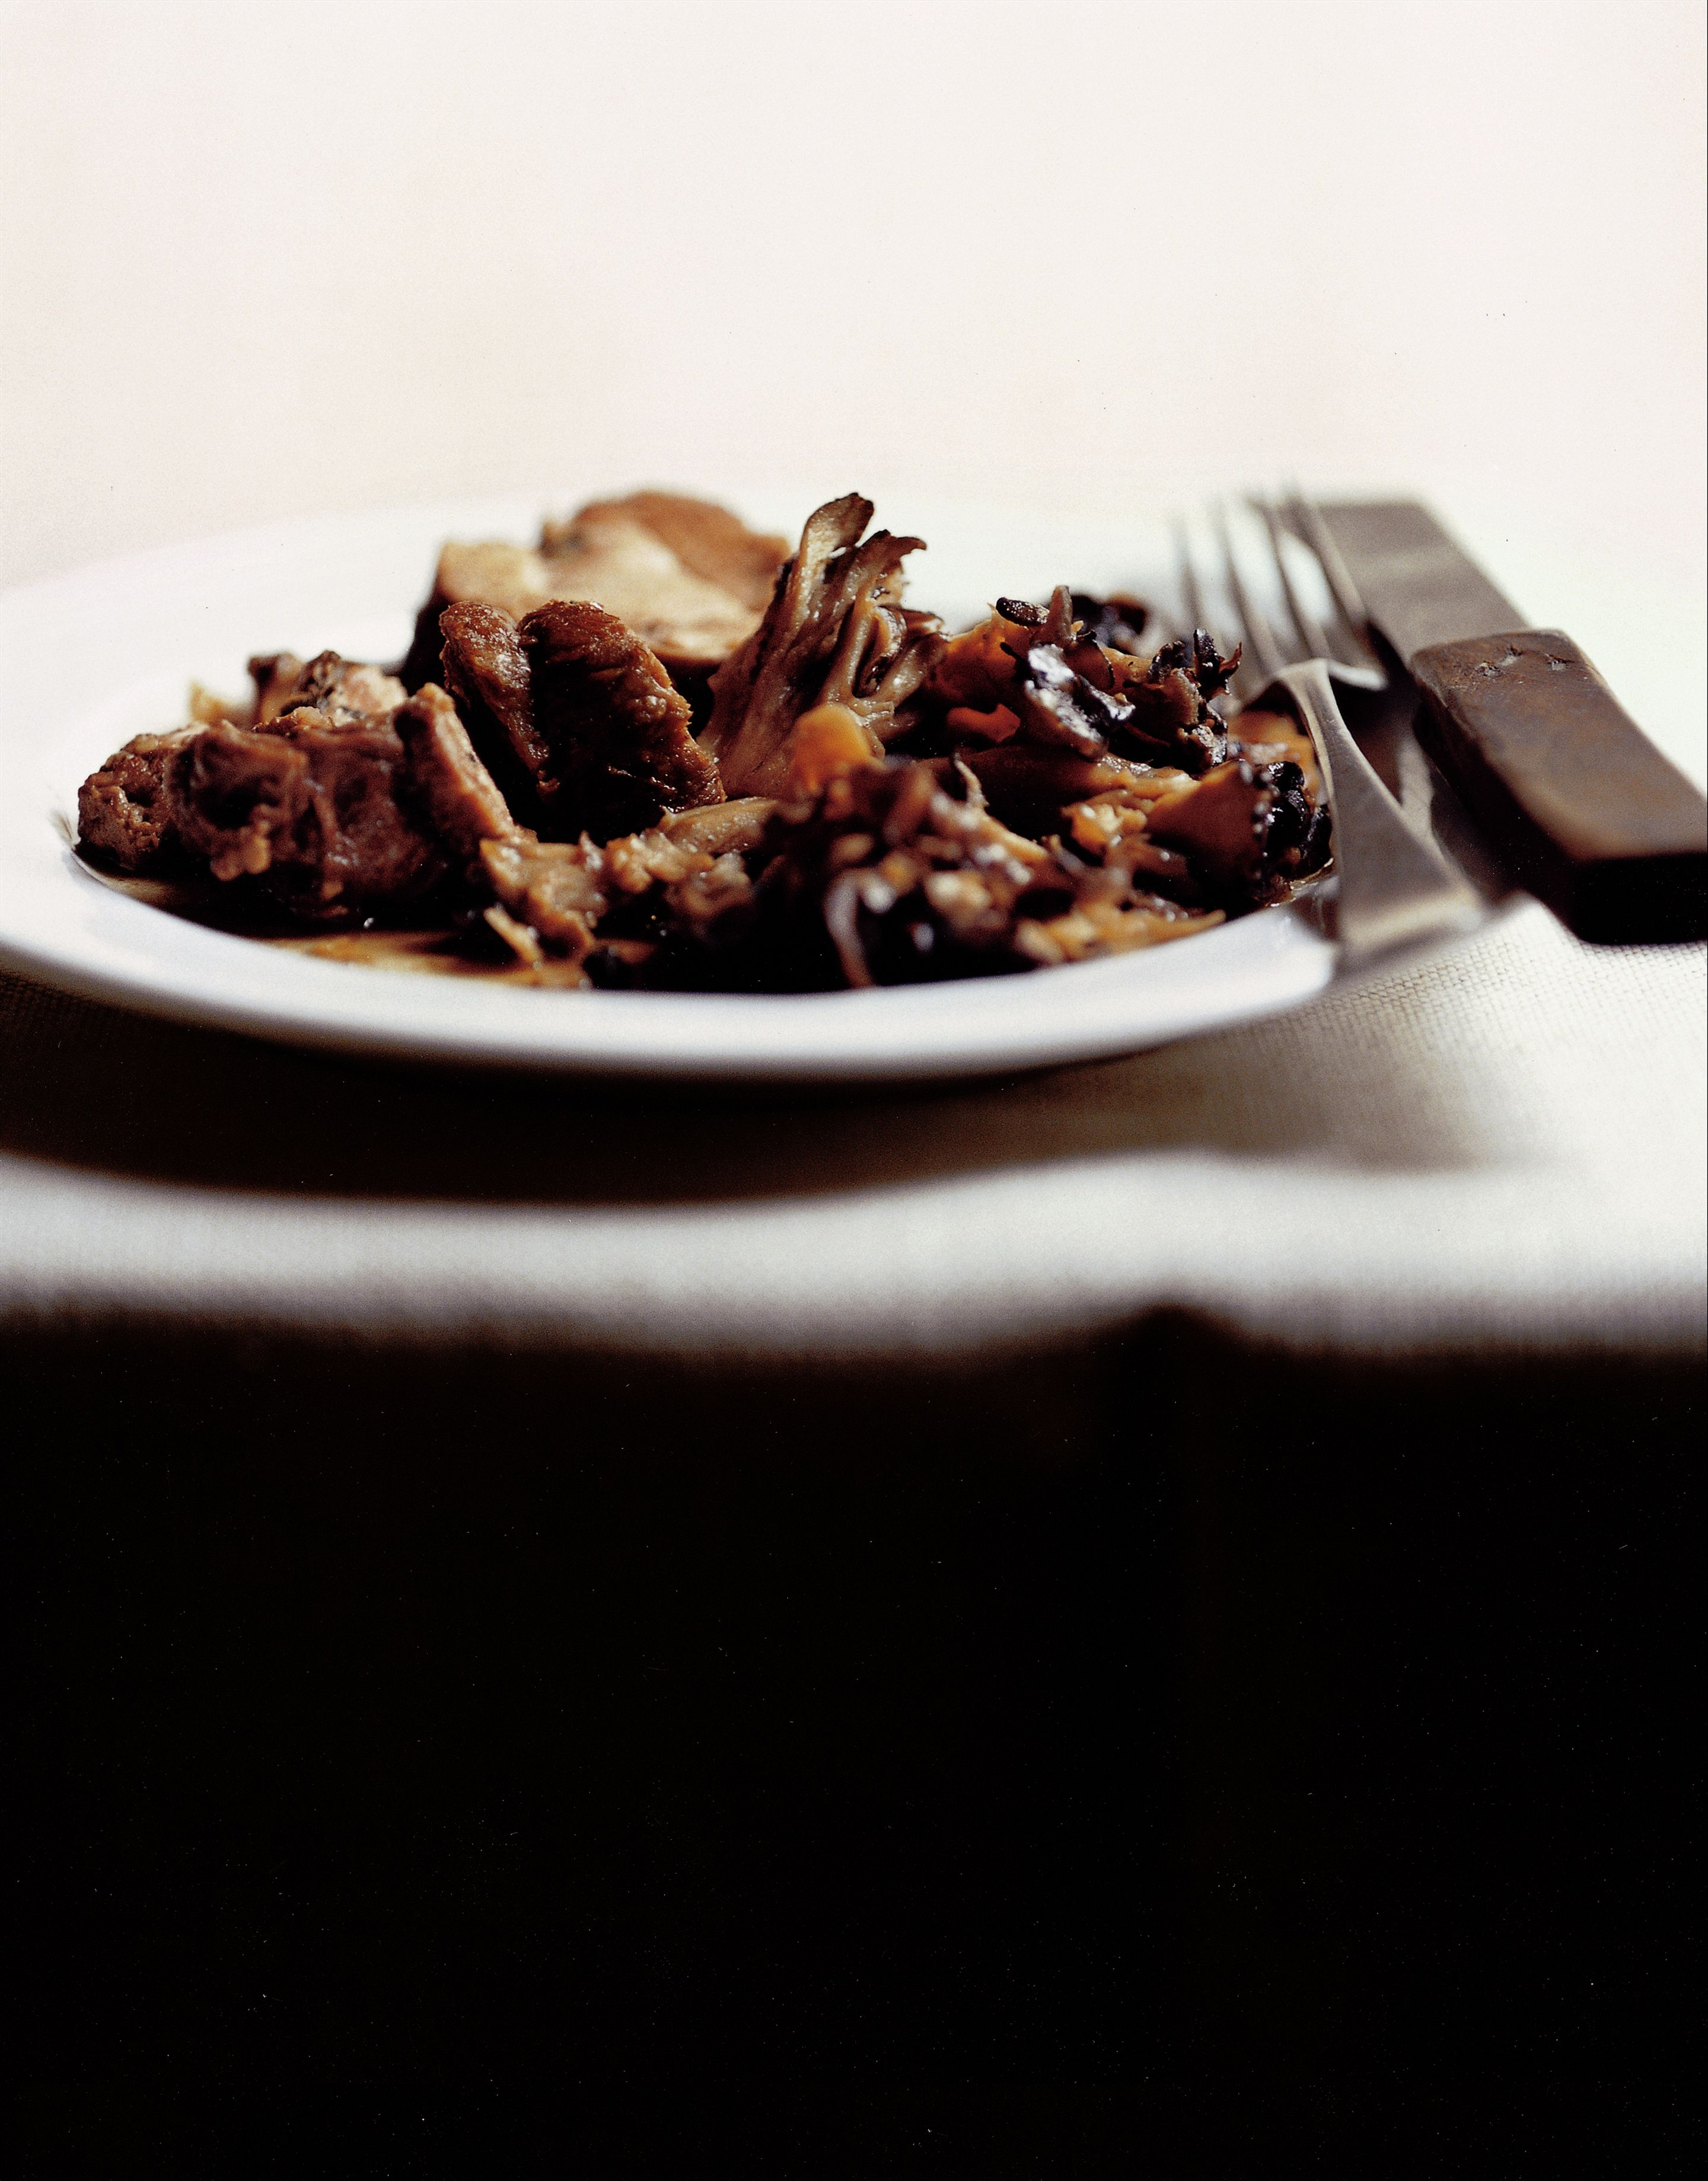 Shoulder of lamb with mushrooms